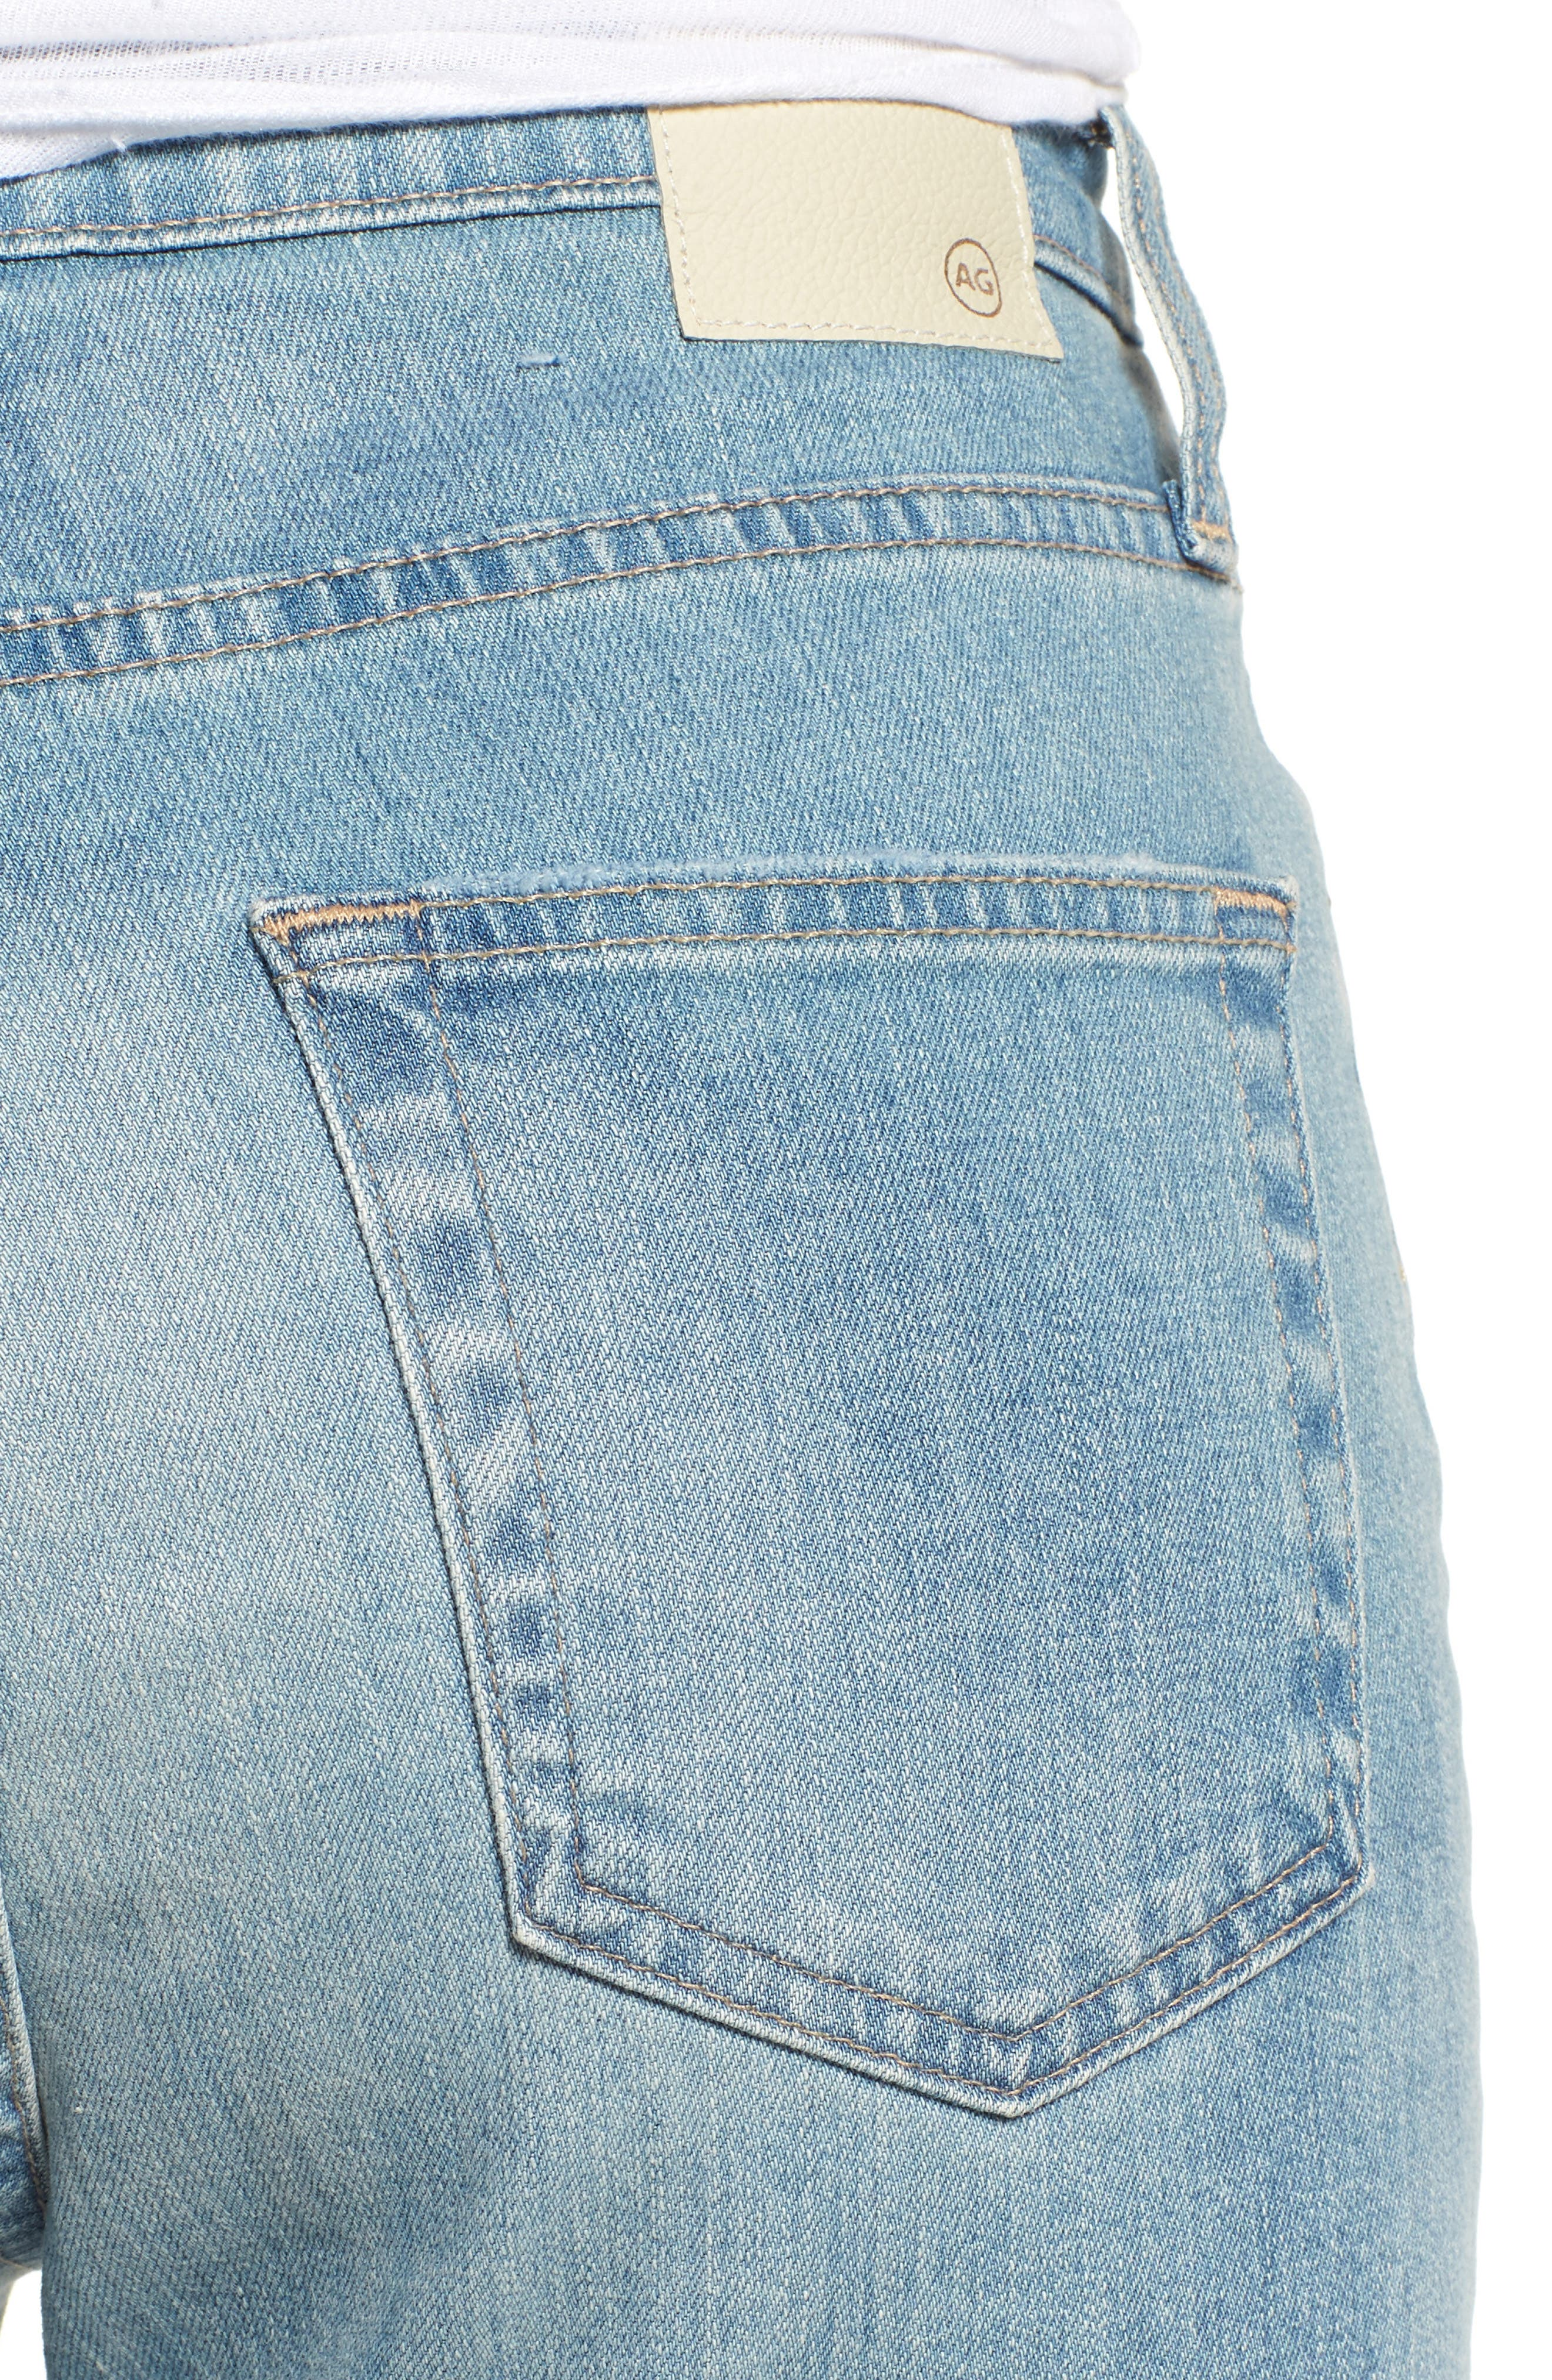 'The Phoebe' Vintage High Rise Straight Leg Jeans,                             Alternate thumbnail 4, color,                             18 Years Headlands